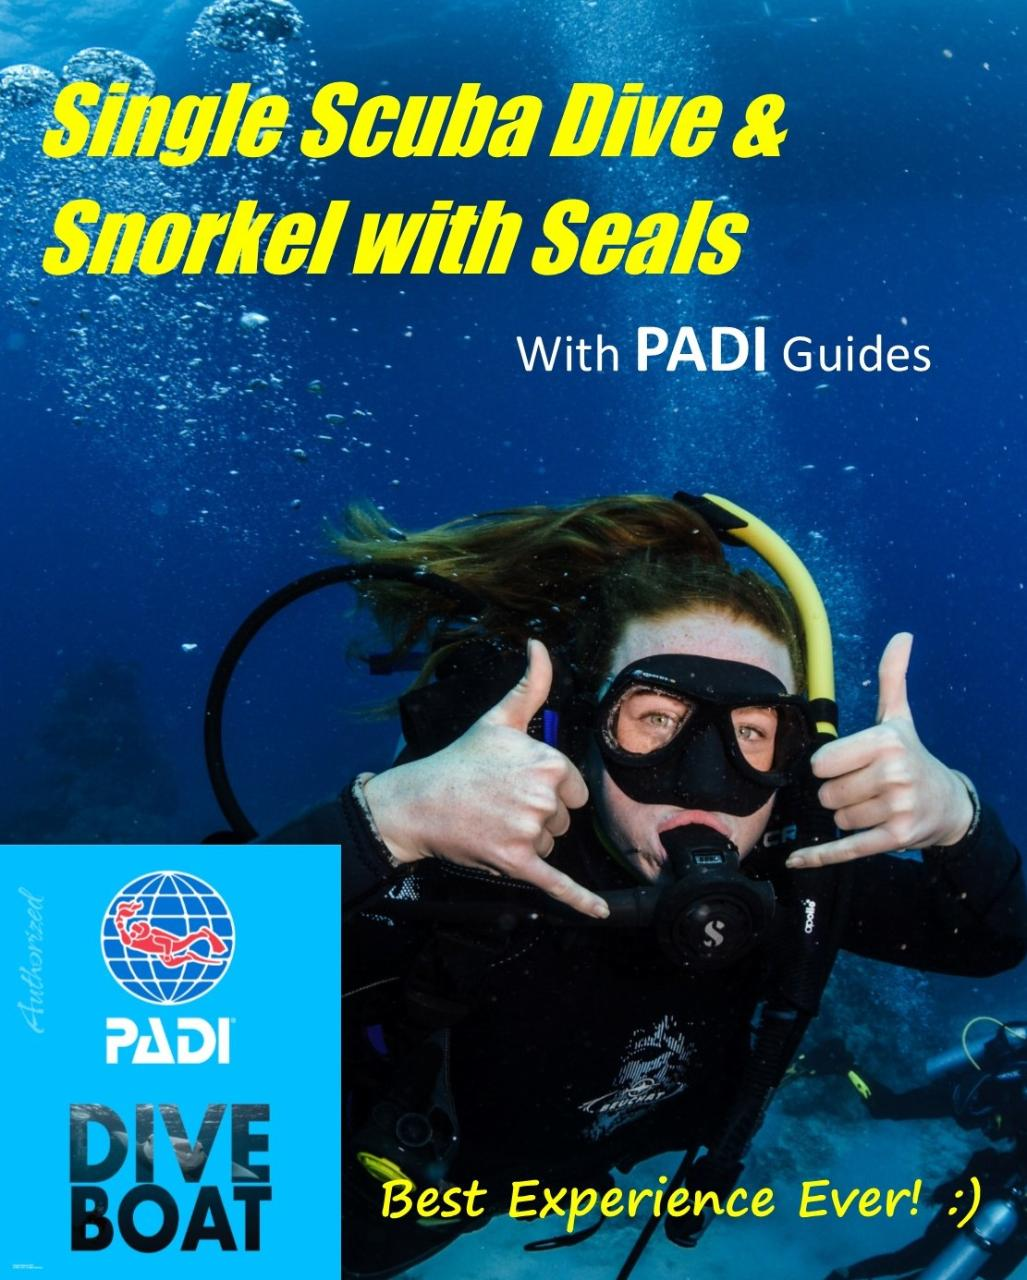 Guided Single Scuba Dive & Snorkel with Seals Adventure Combo BEST EXPERIENCE EVER!